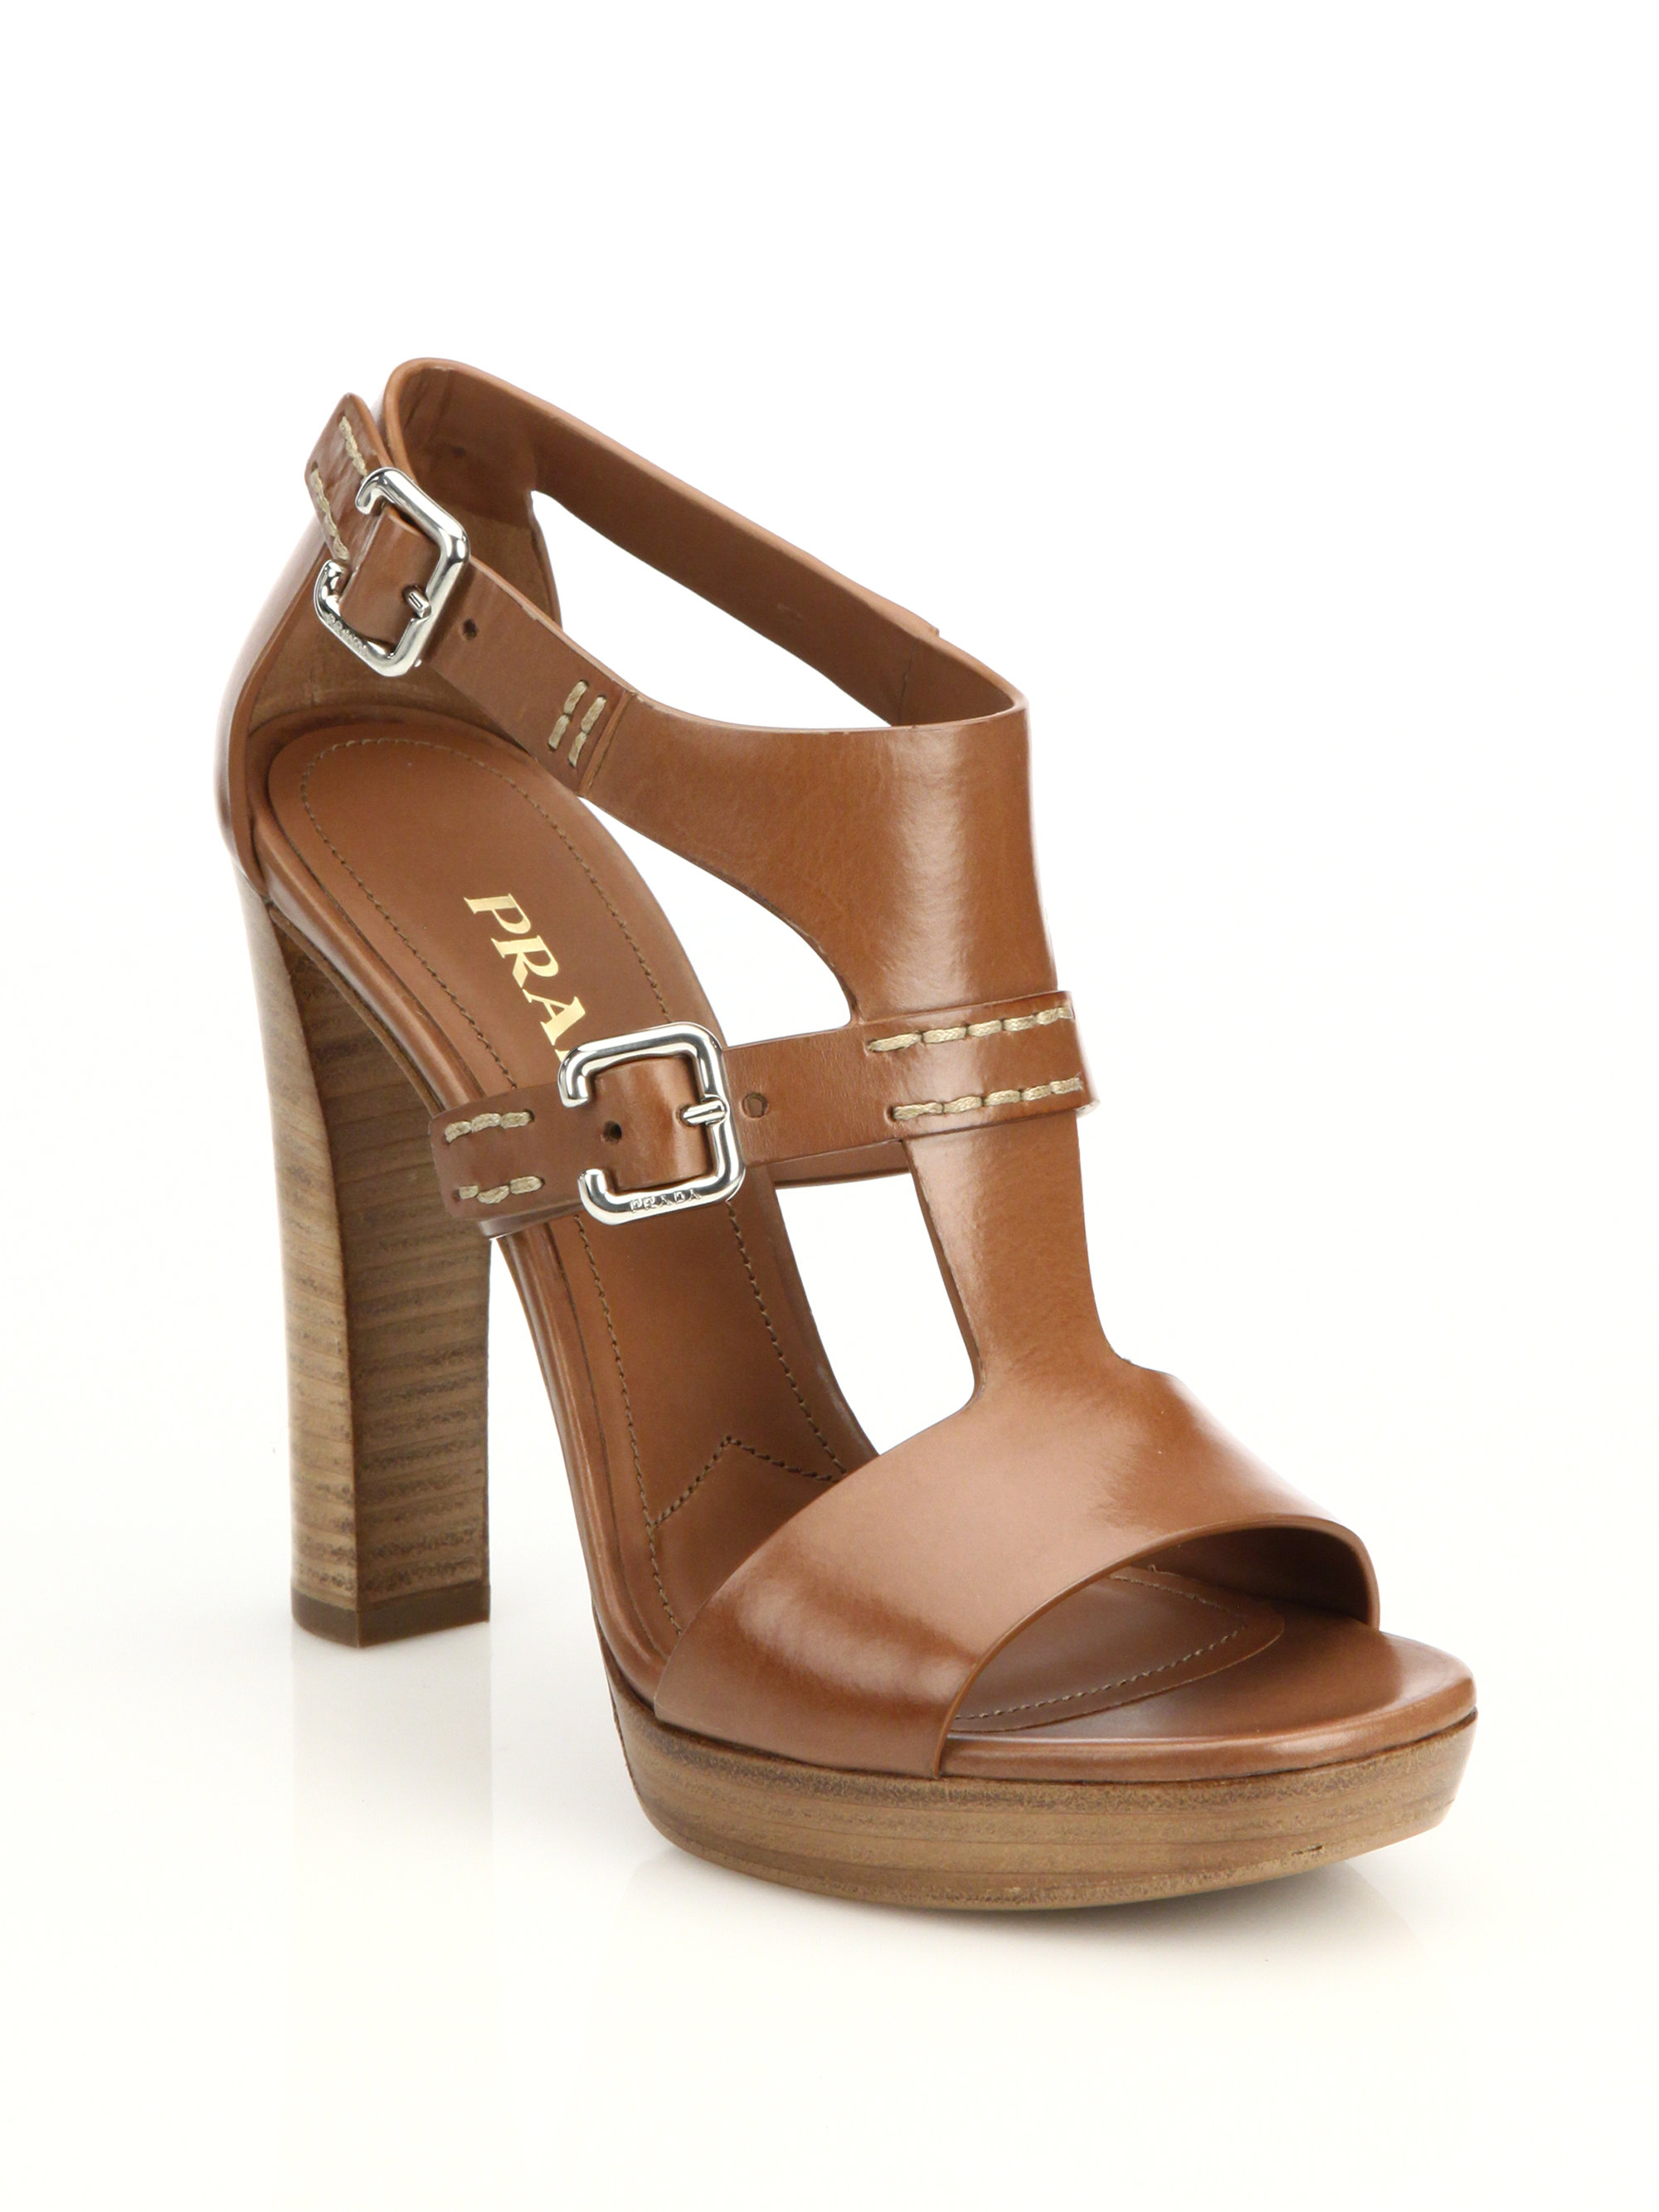 Lyst Prada Leather Stacked Heel Sandals In Brown